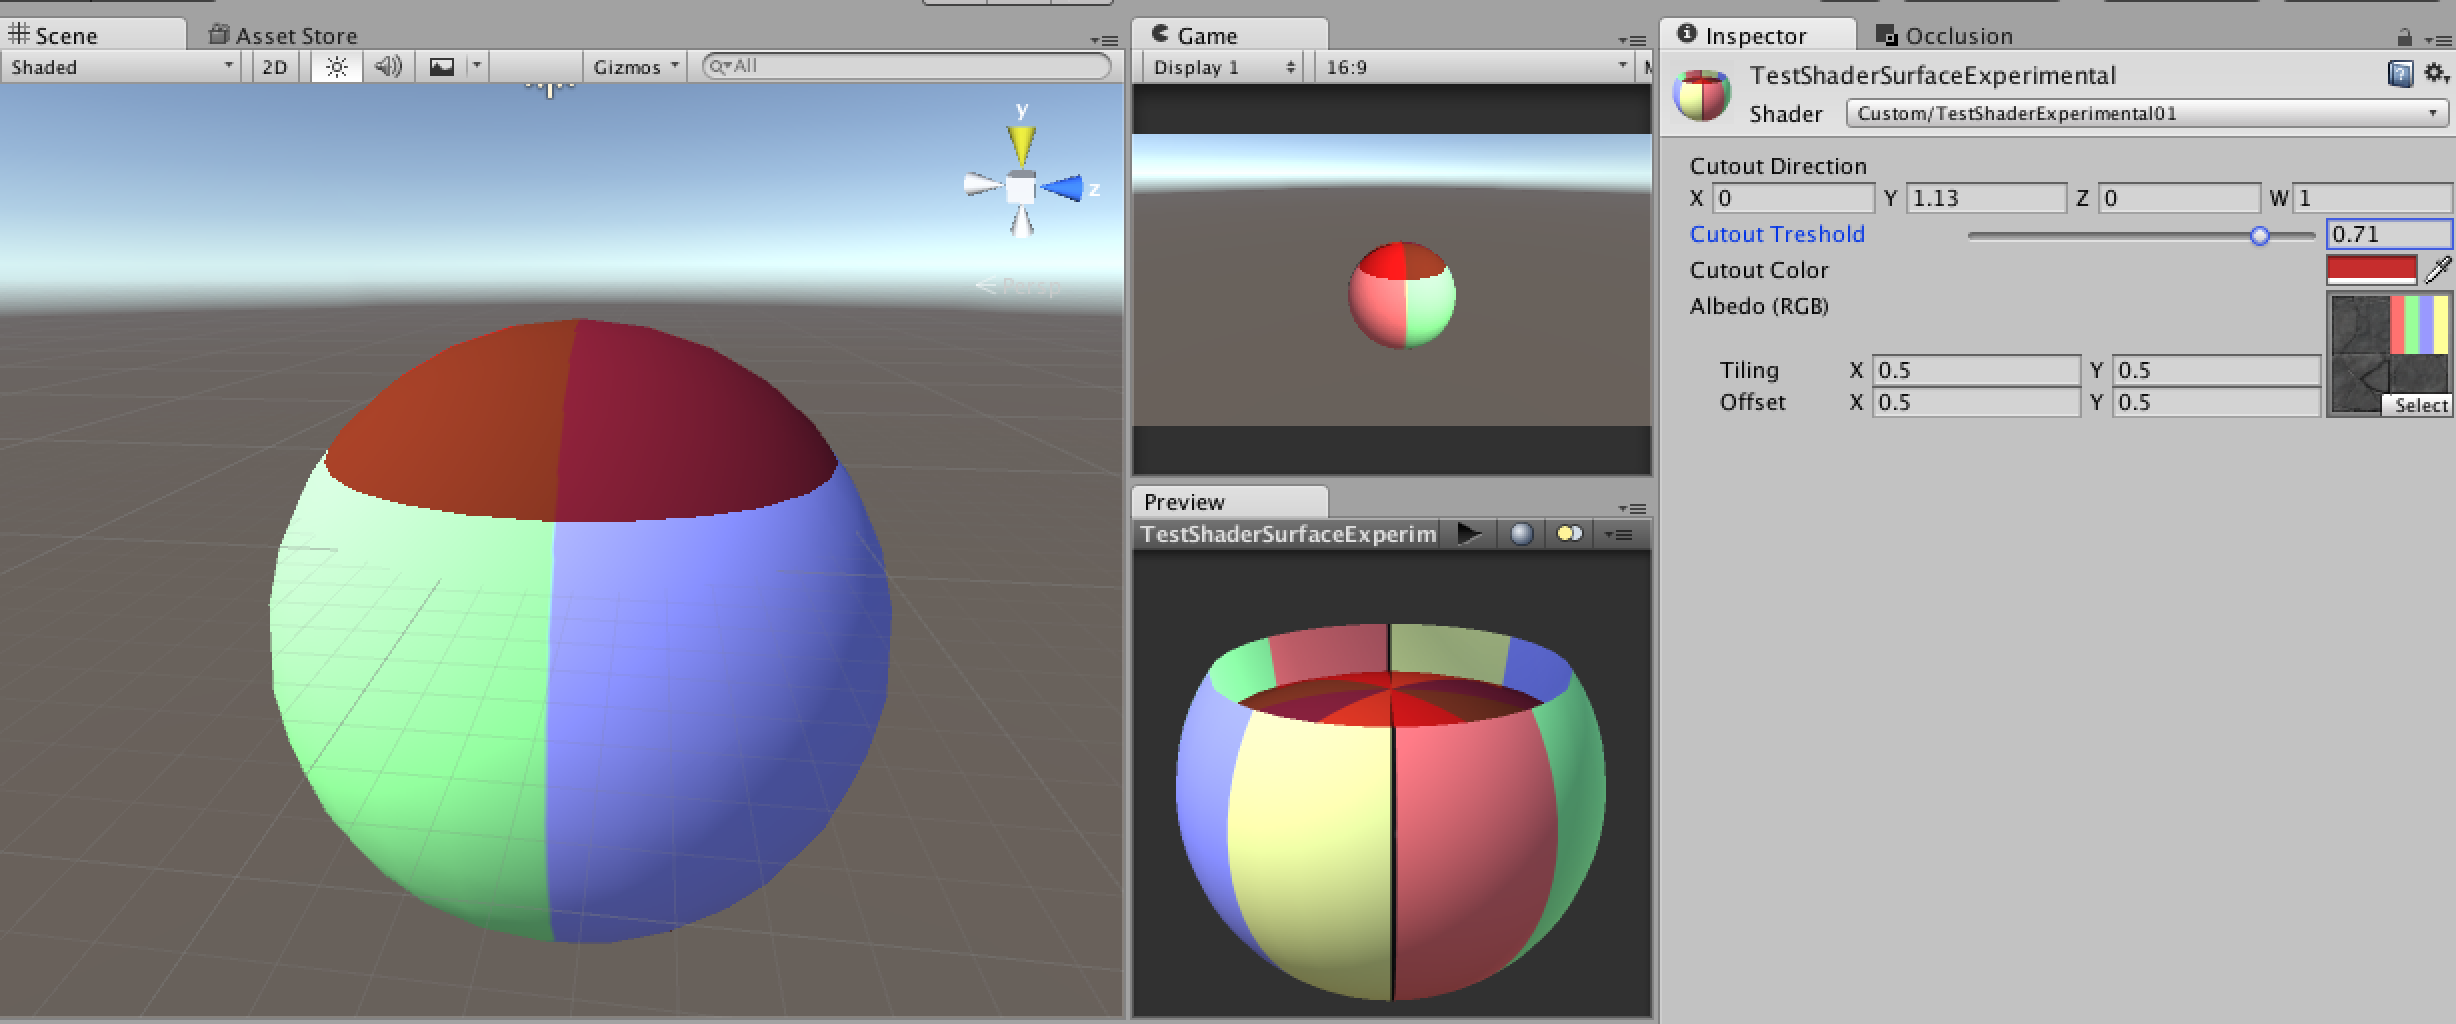 Shader looks good in Preview-Window, but not in Scene/Game View